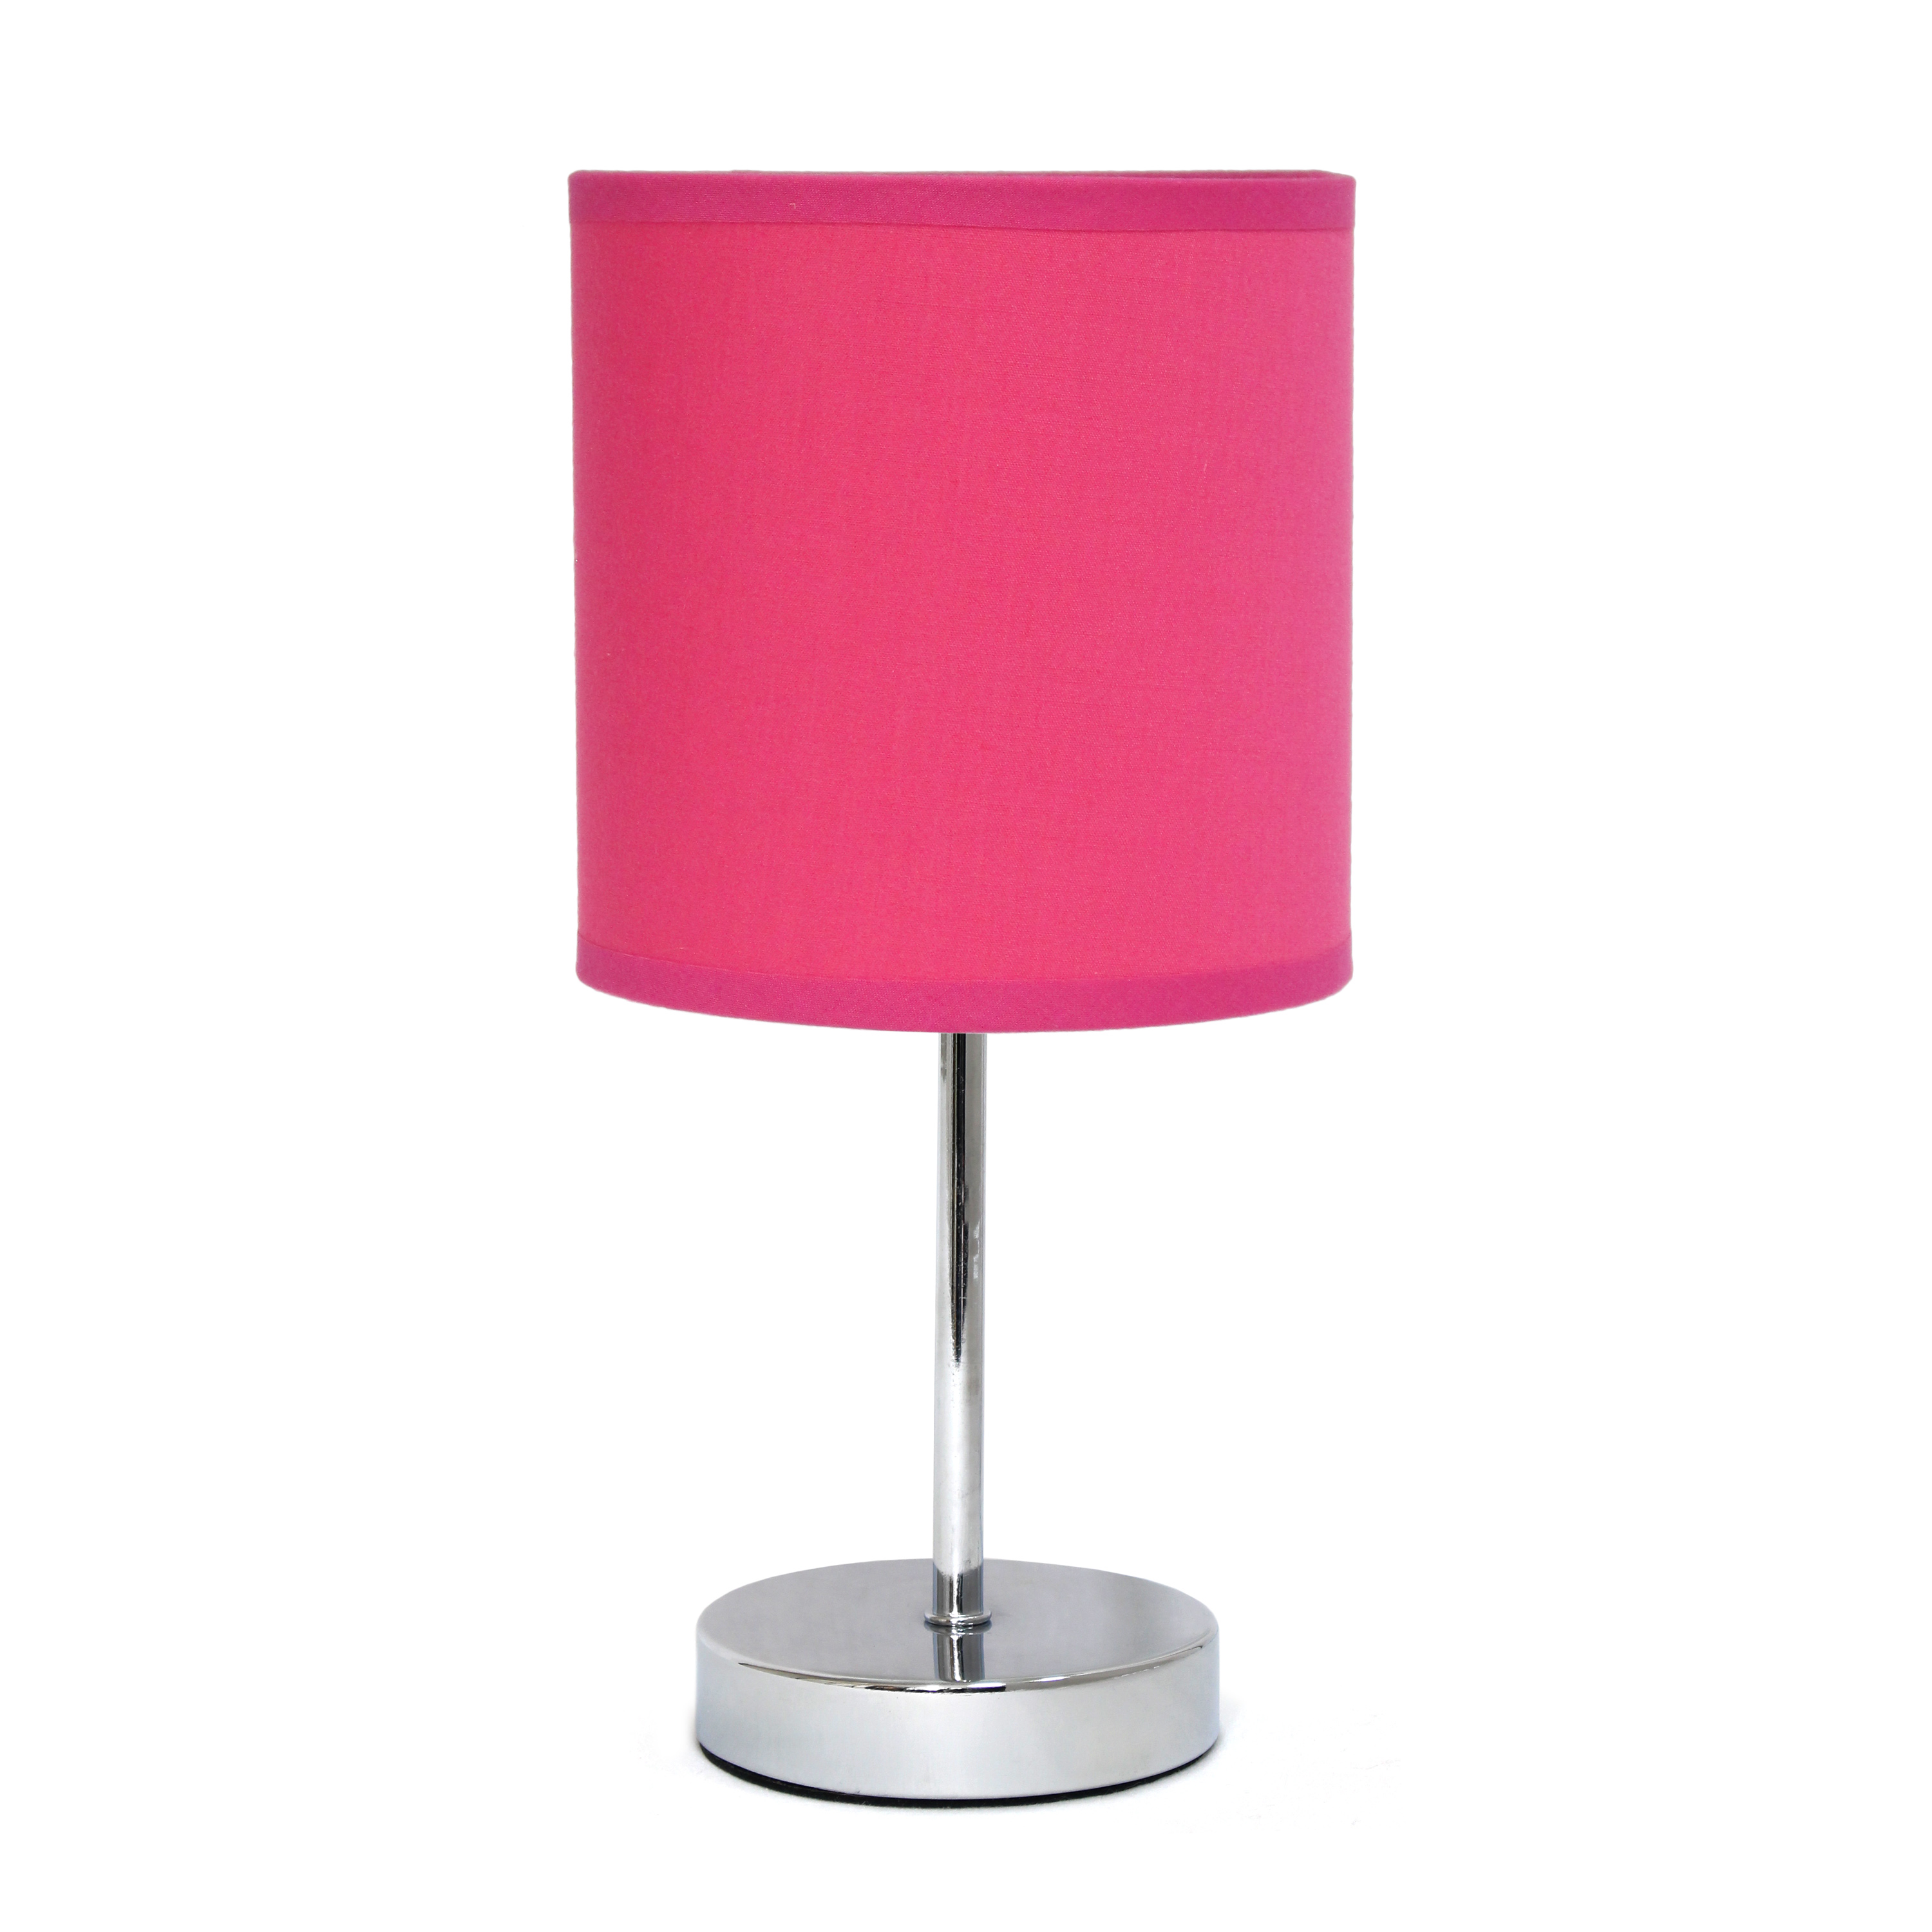 Simple Designs Chrome Mini Basic Table Lamp with Fabric Shade, Hot Pink